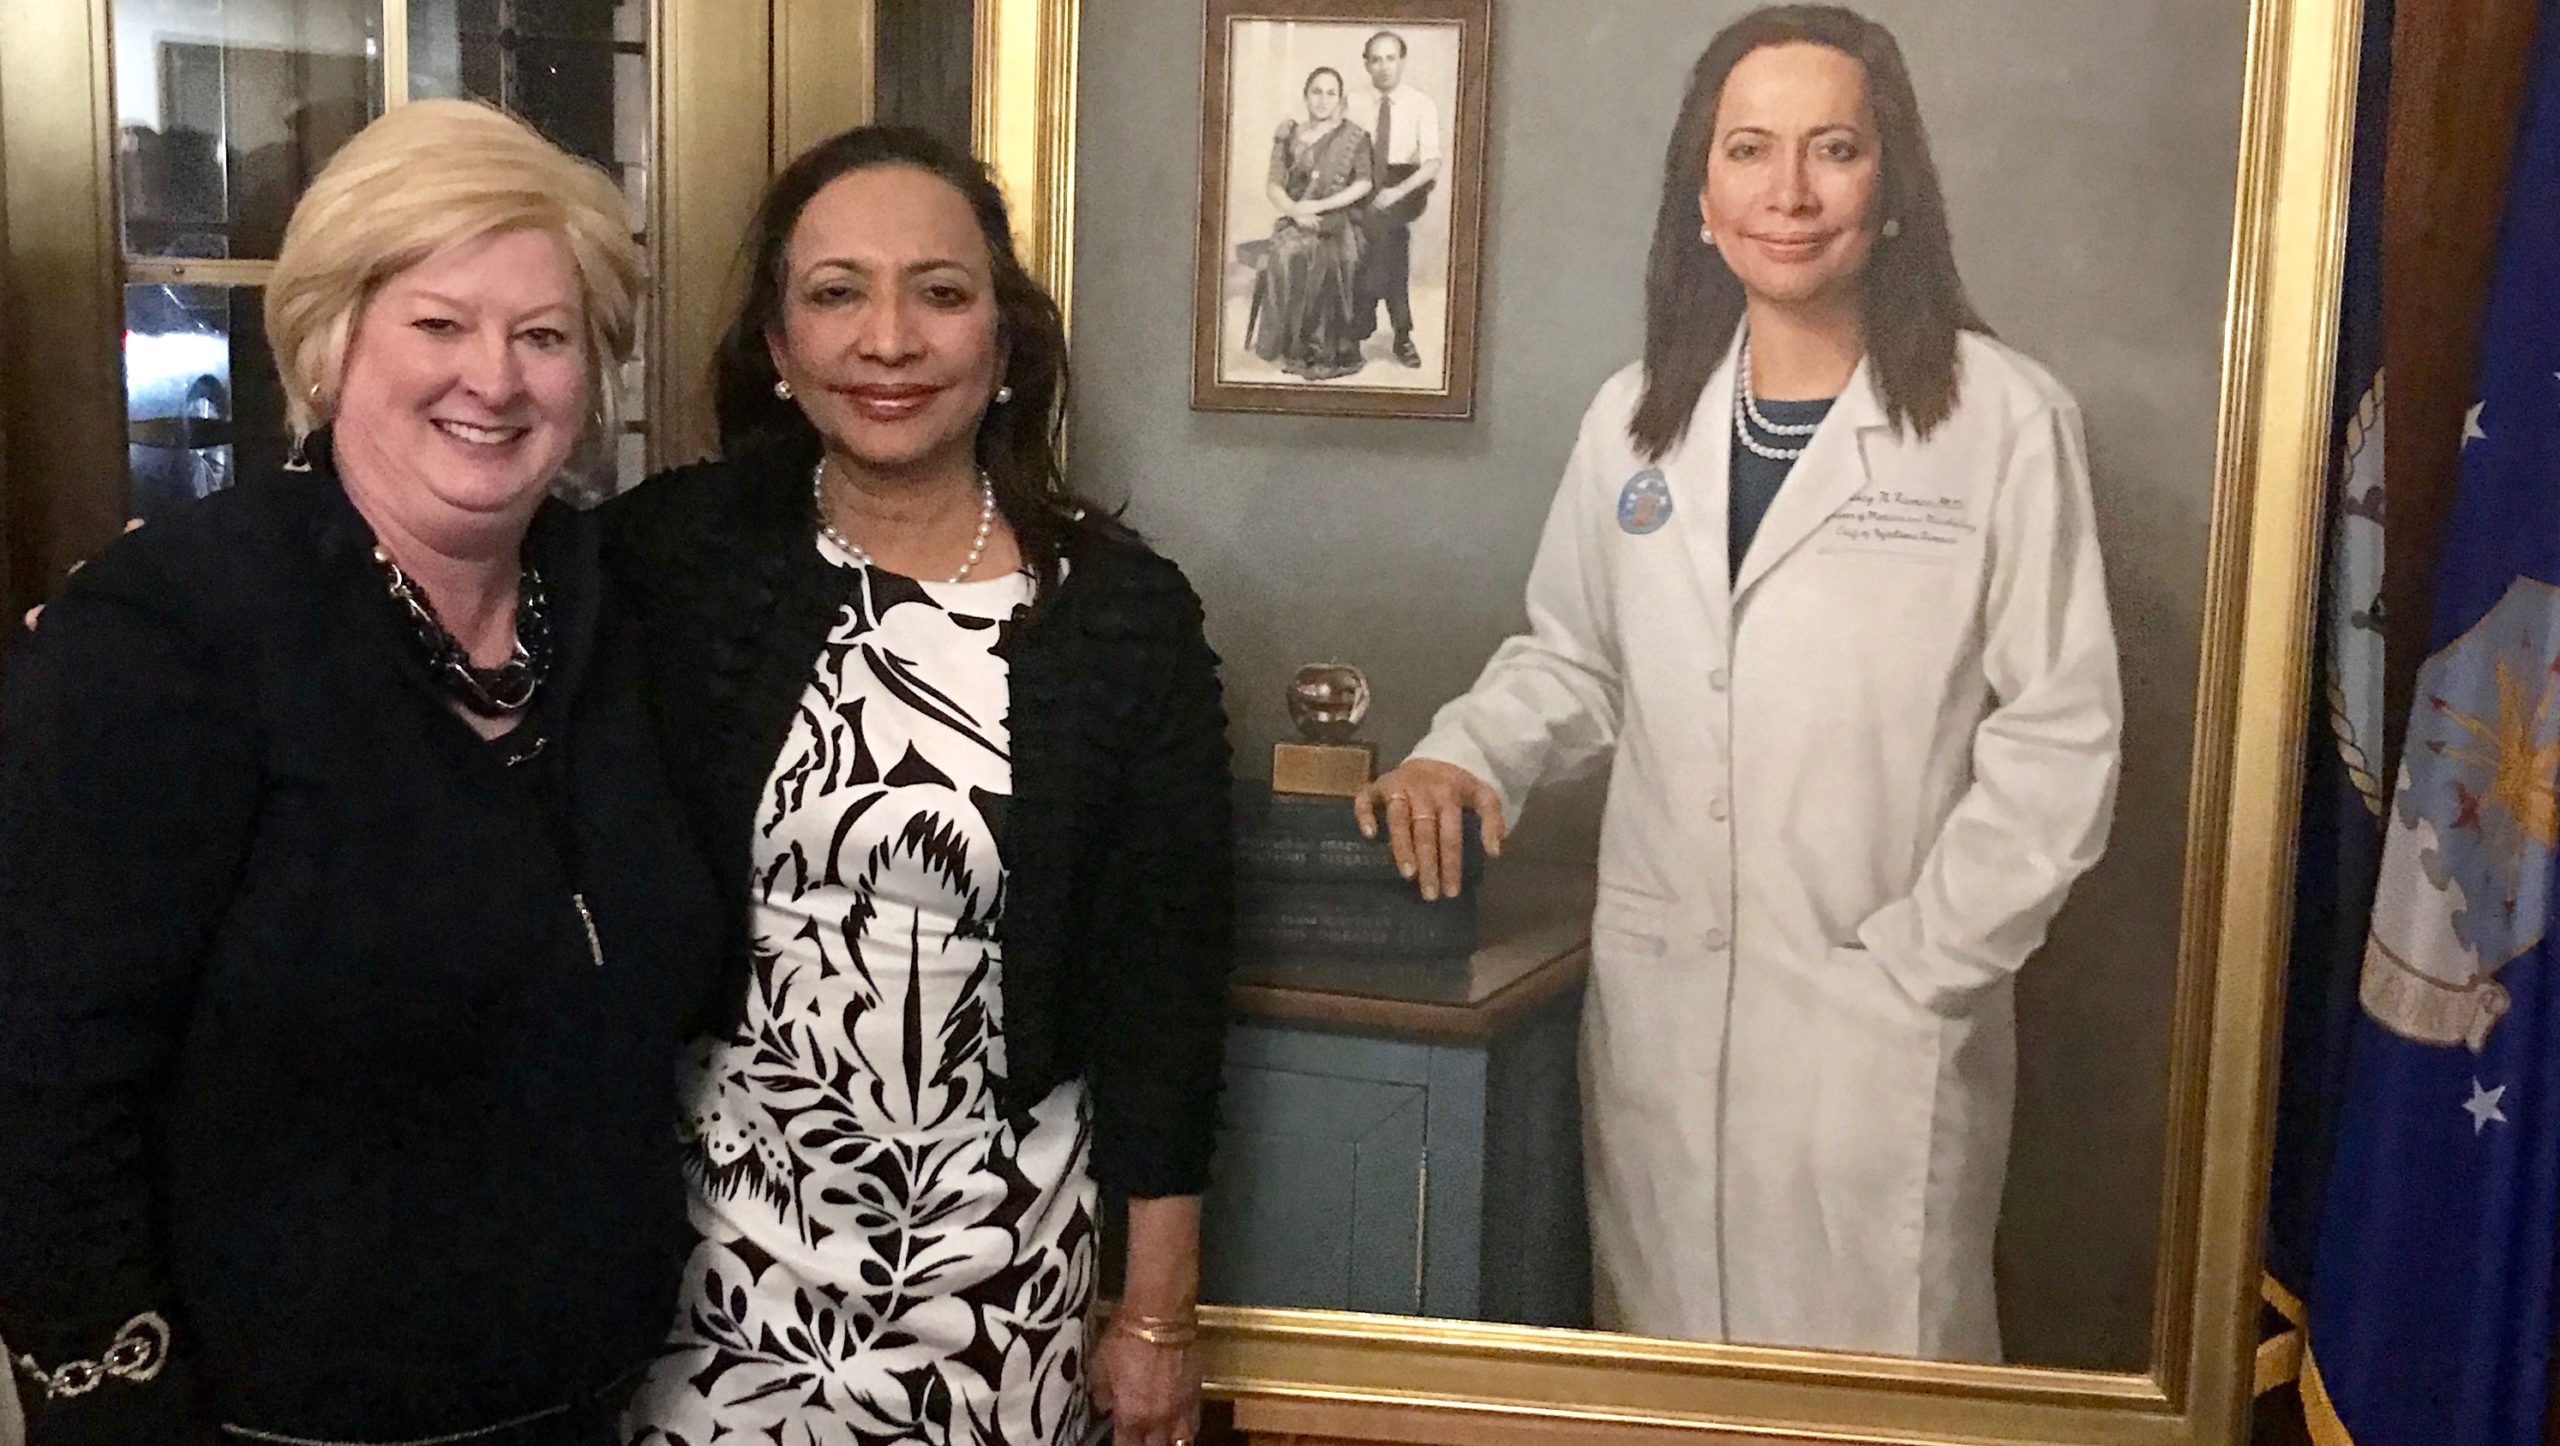 Two women stand side by side in front of a painting